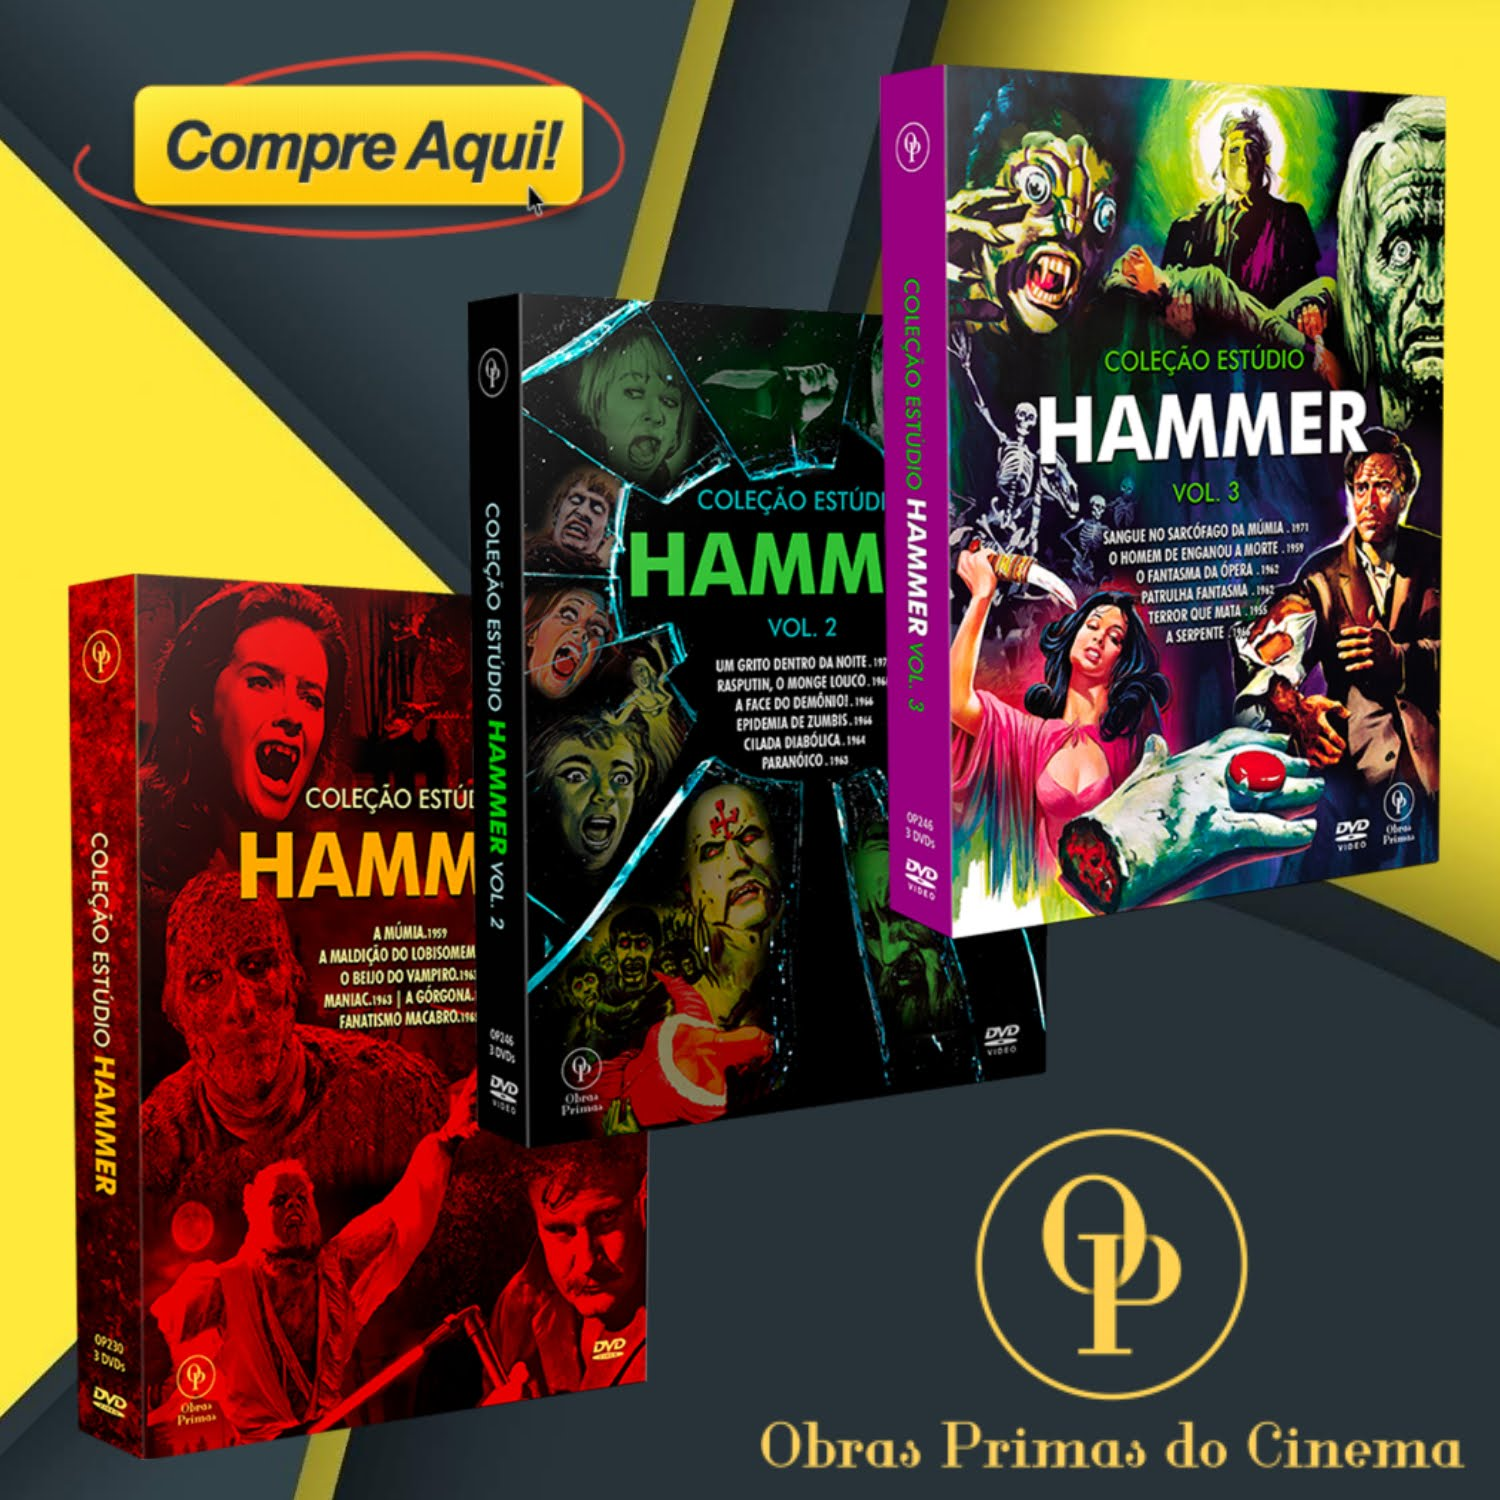 OBRAS PRIMAS DO CINEMA